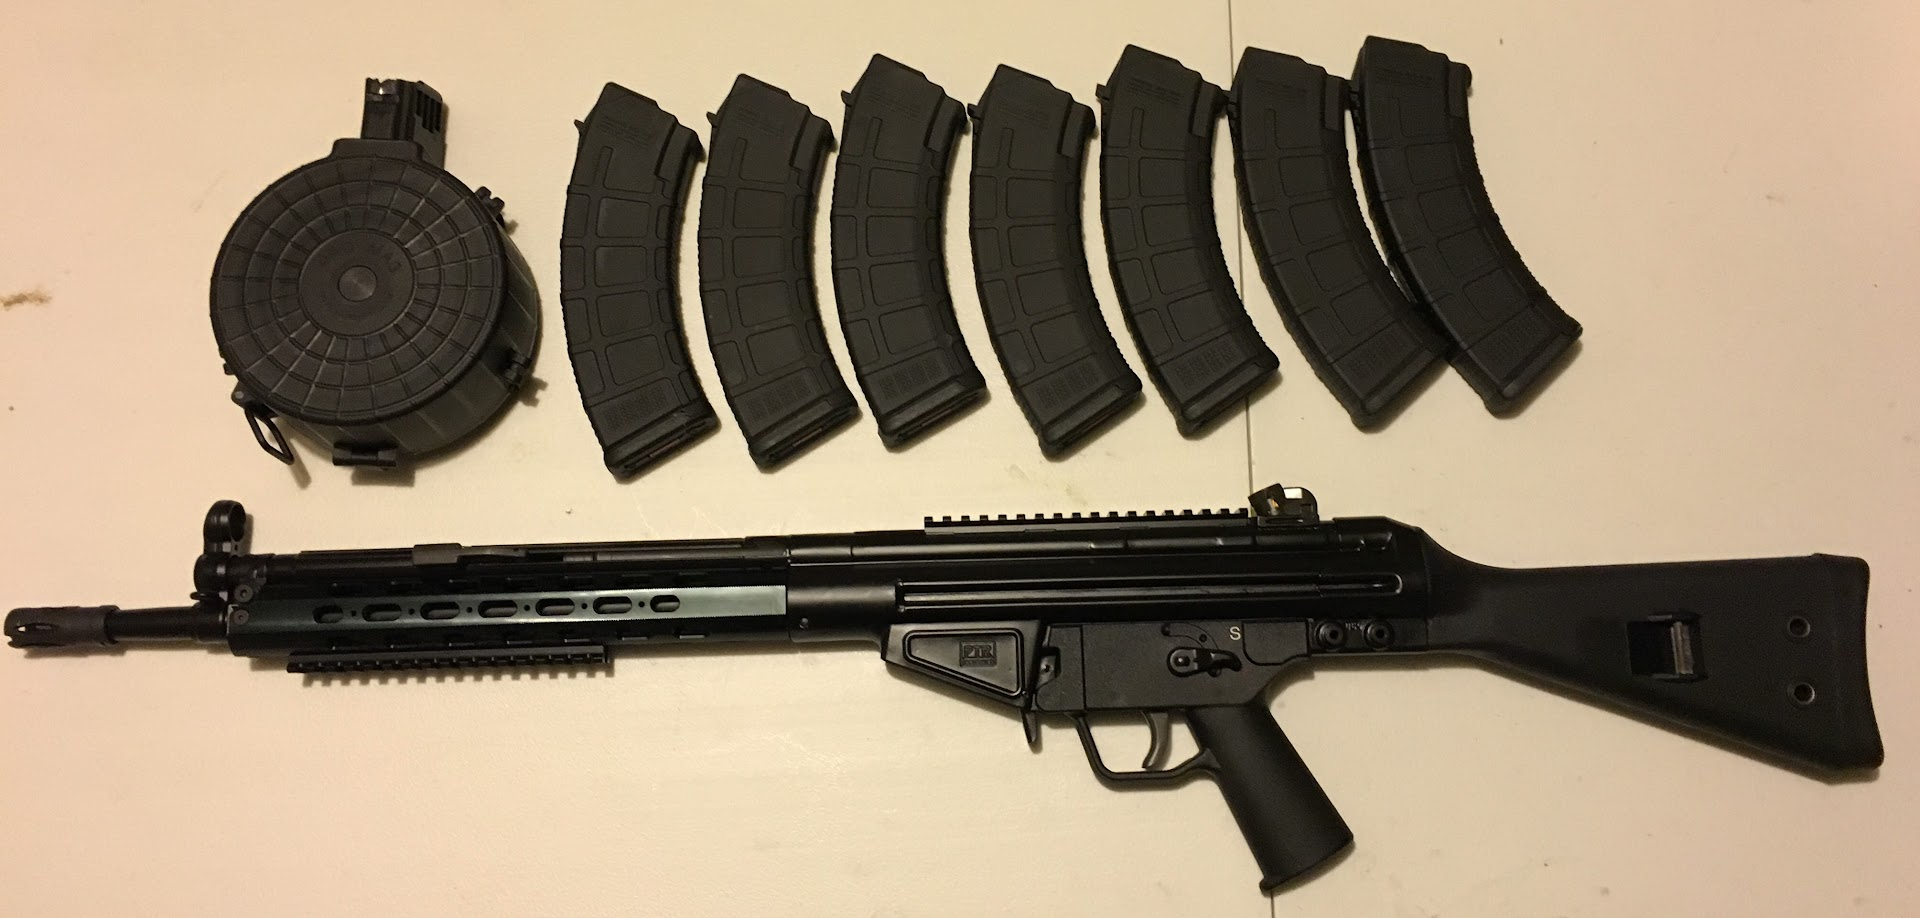 Wts ptr 32 kfr gen ii in 762x39 takes ak mags im asking 950 firm publicscrutiny Choice Image